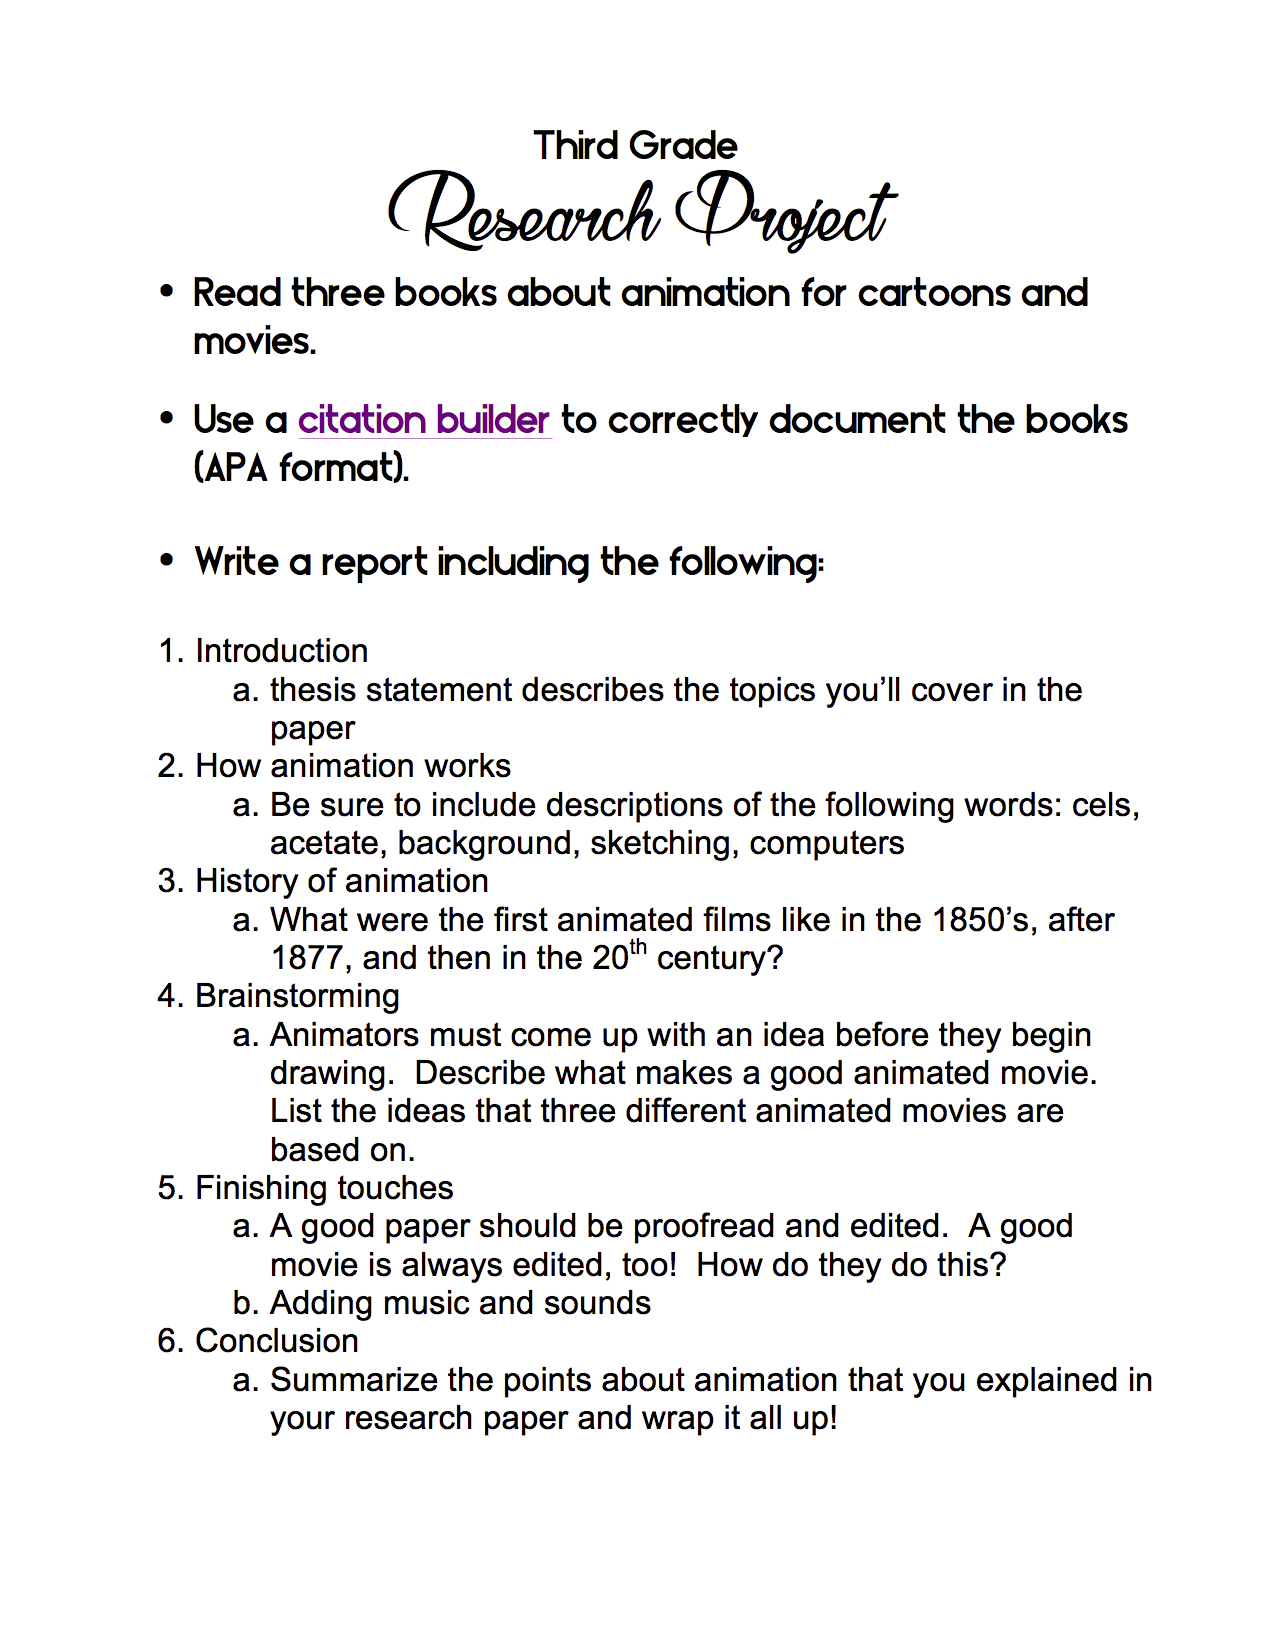 002 Research Paper Cancer Ideas 3rd Grade Shocking Breast Topic Full